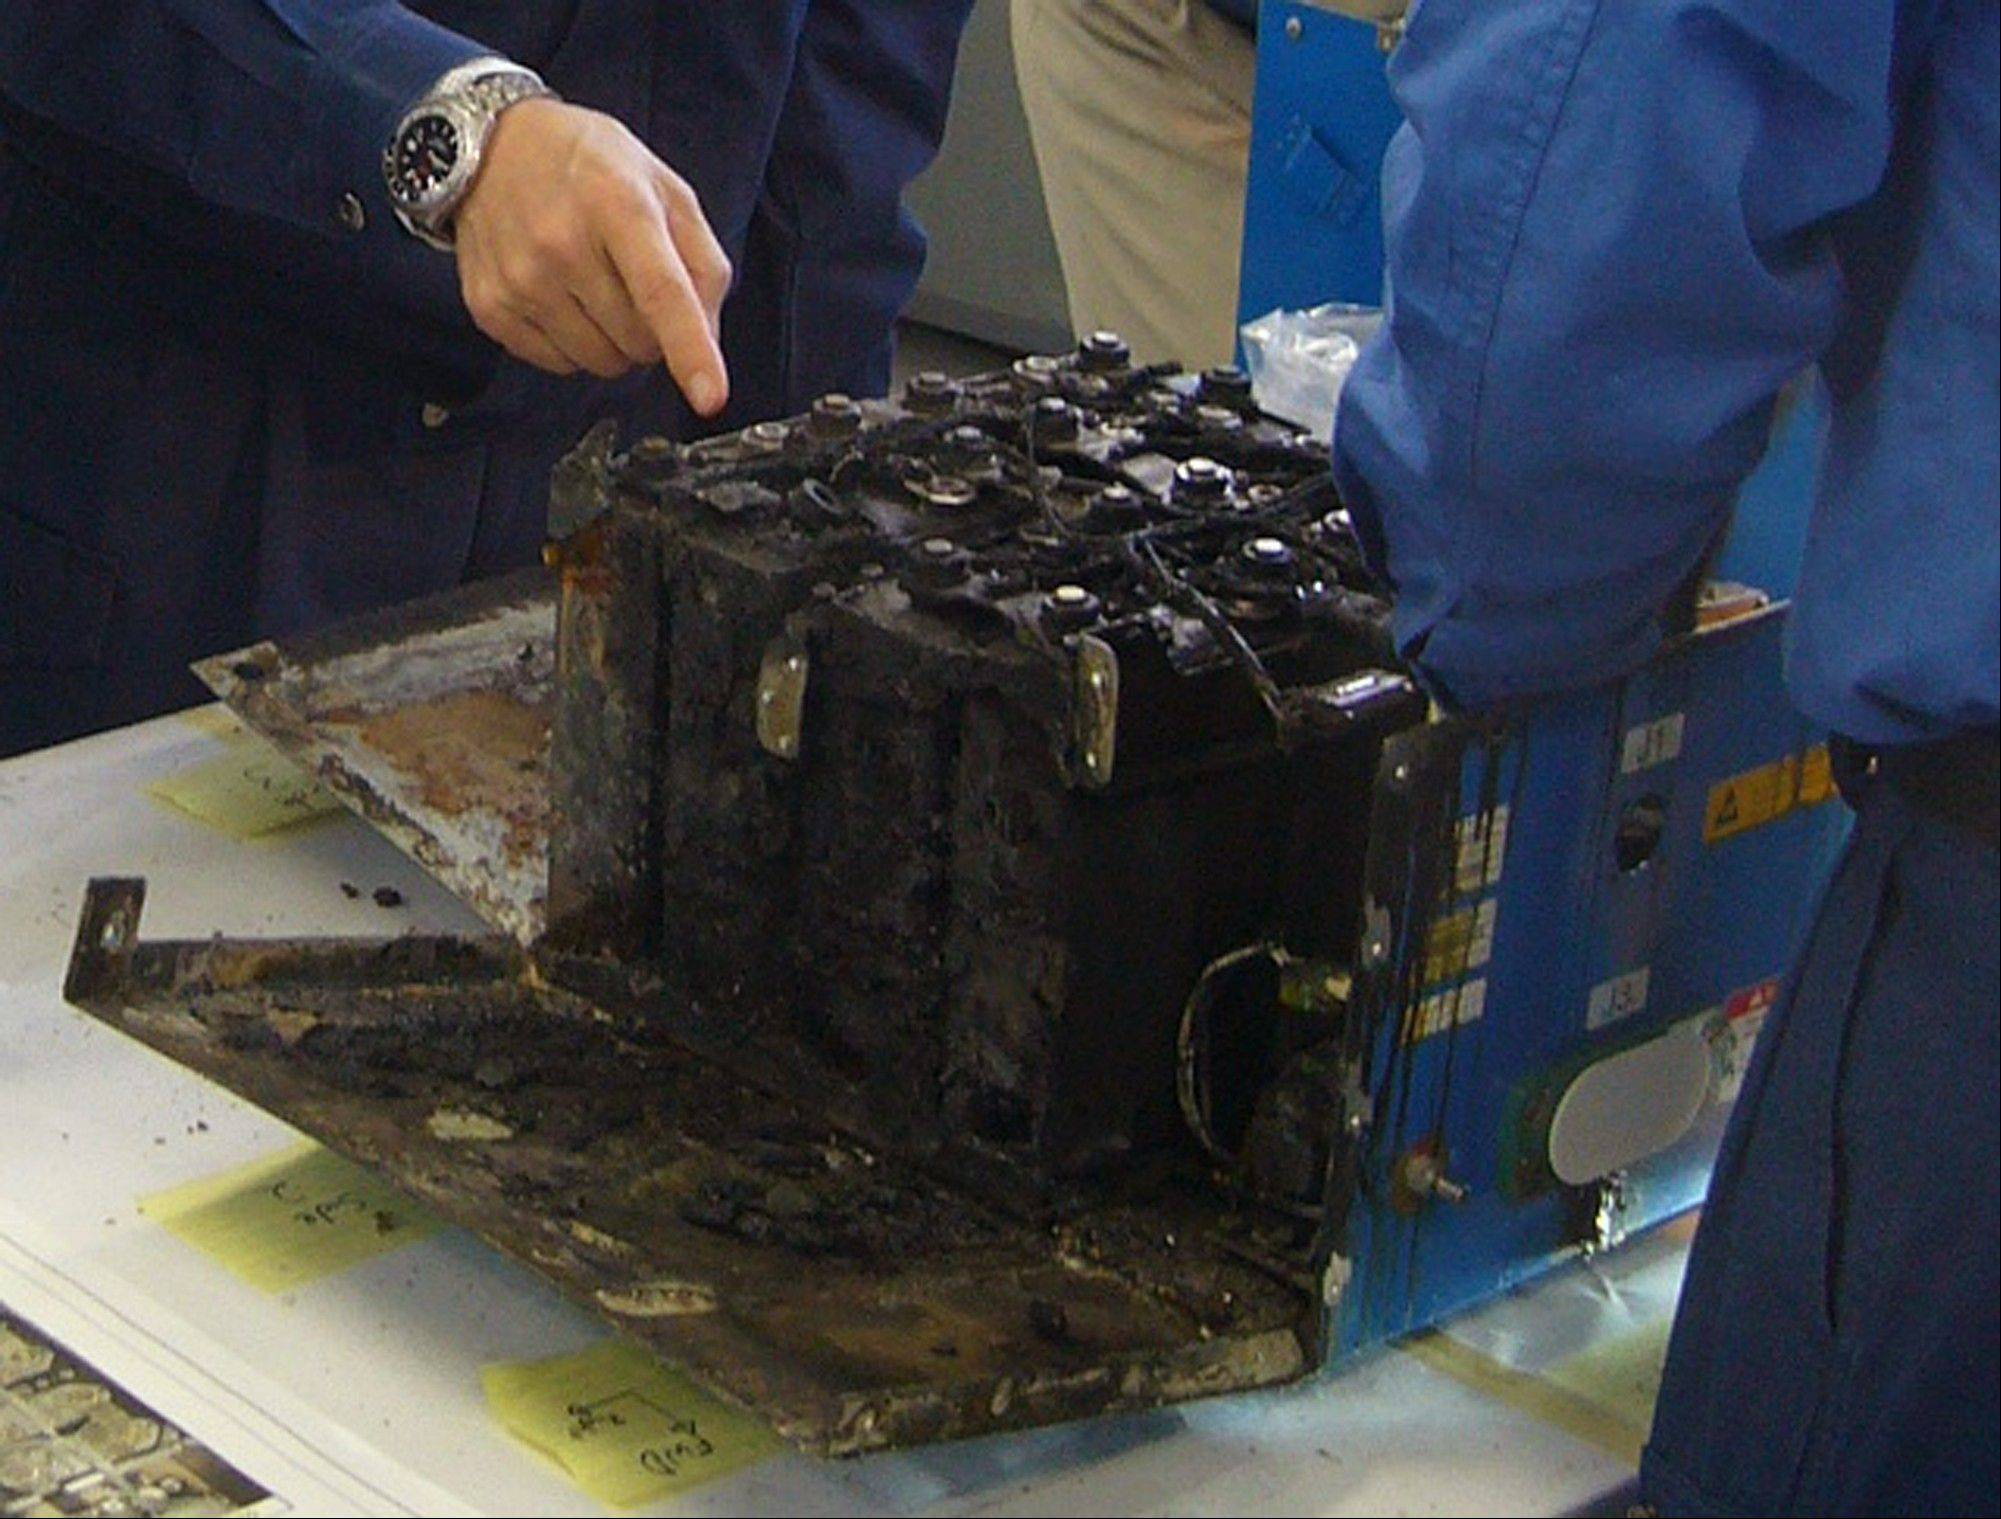 The distorted main lithium-ion battery of the All Nippon Airways' Boeing 787 which made an emergency landing, in dismantled by the investigators at its manufacturer GS Yuasa's headquarters in Kyoto, Japan.